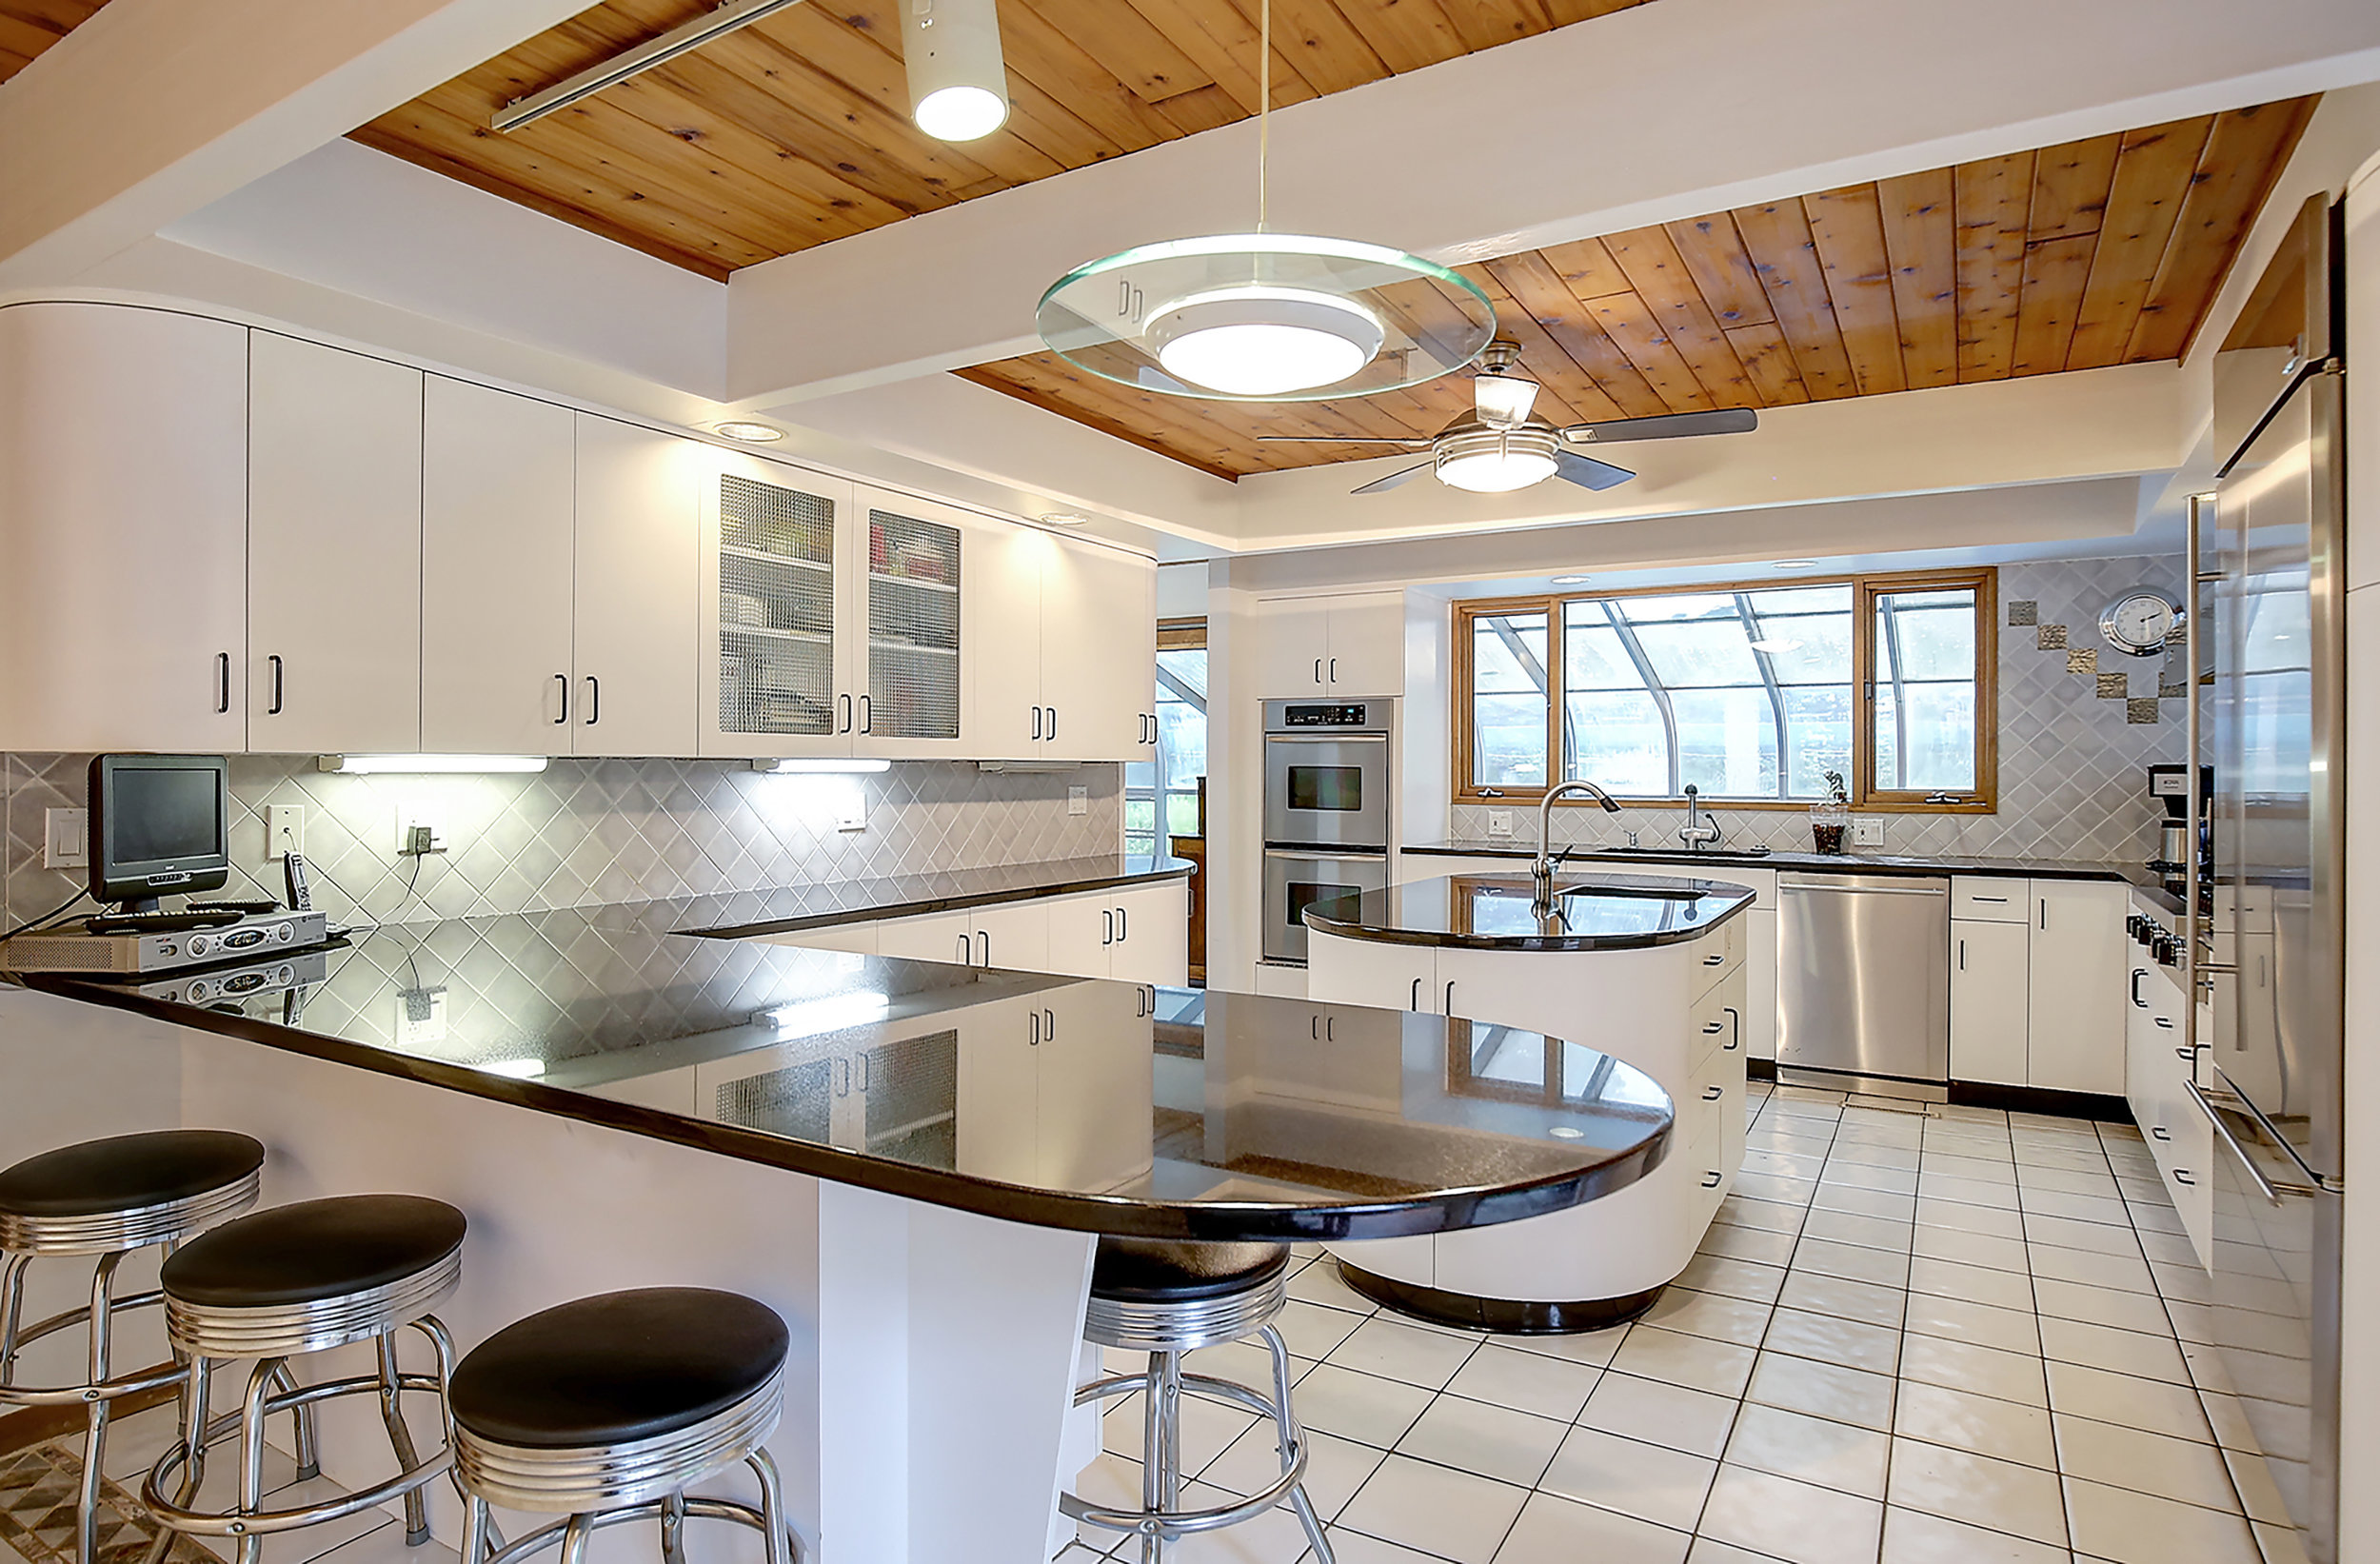 4 The sleek contemporary kitchen offers a breakfast bar and extensive prep space IMG_6000_1_2.jpg